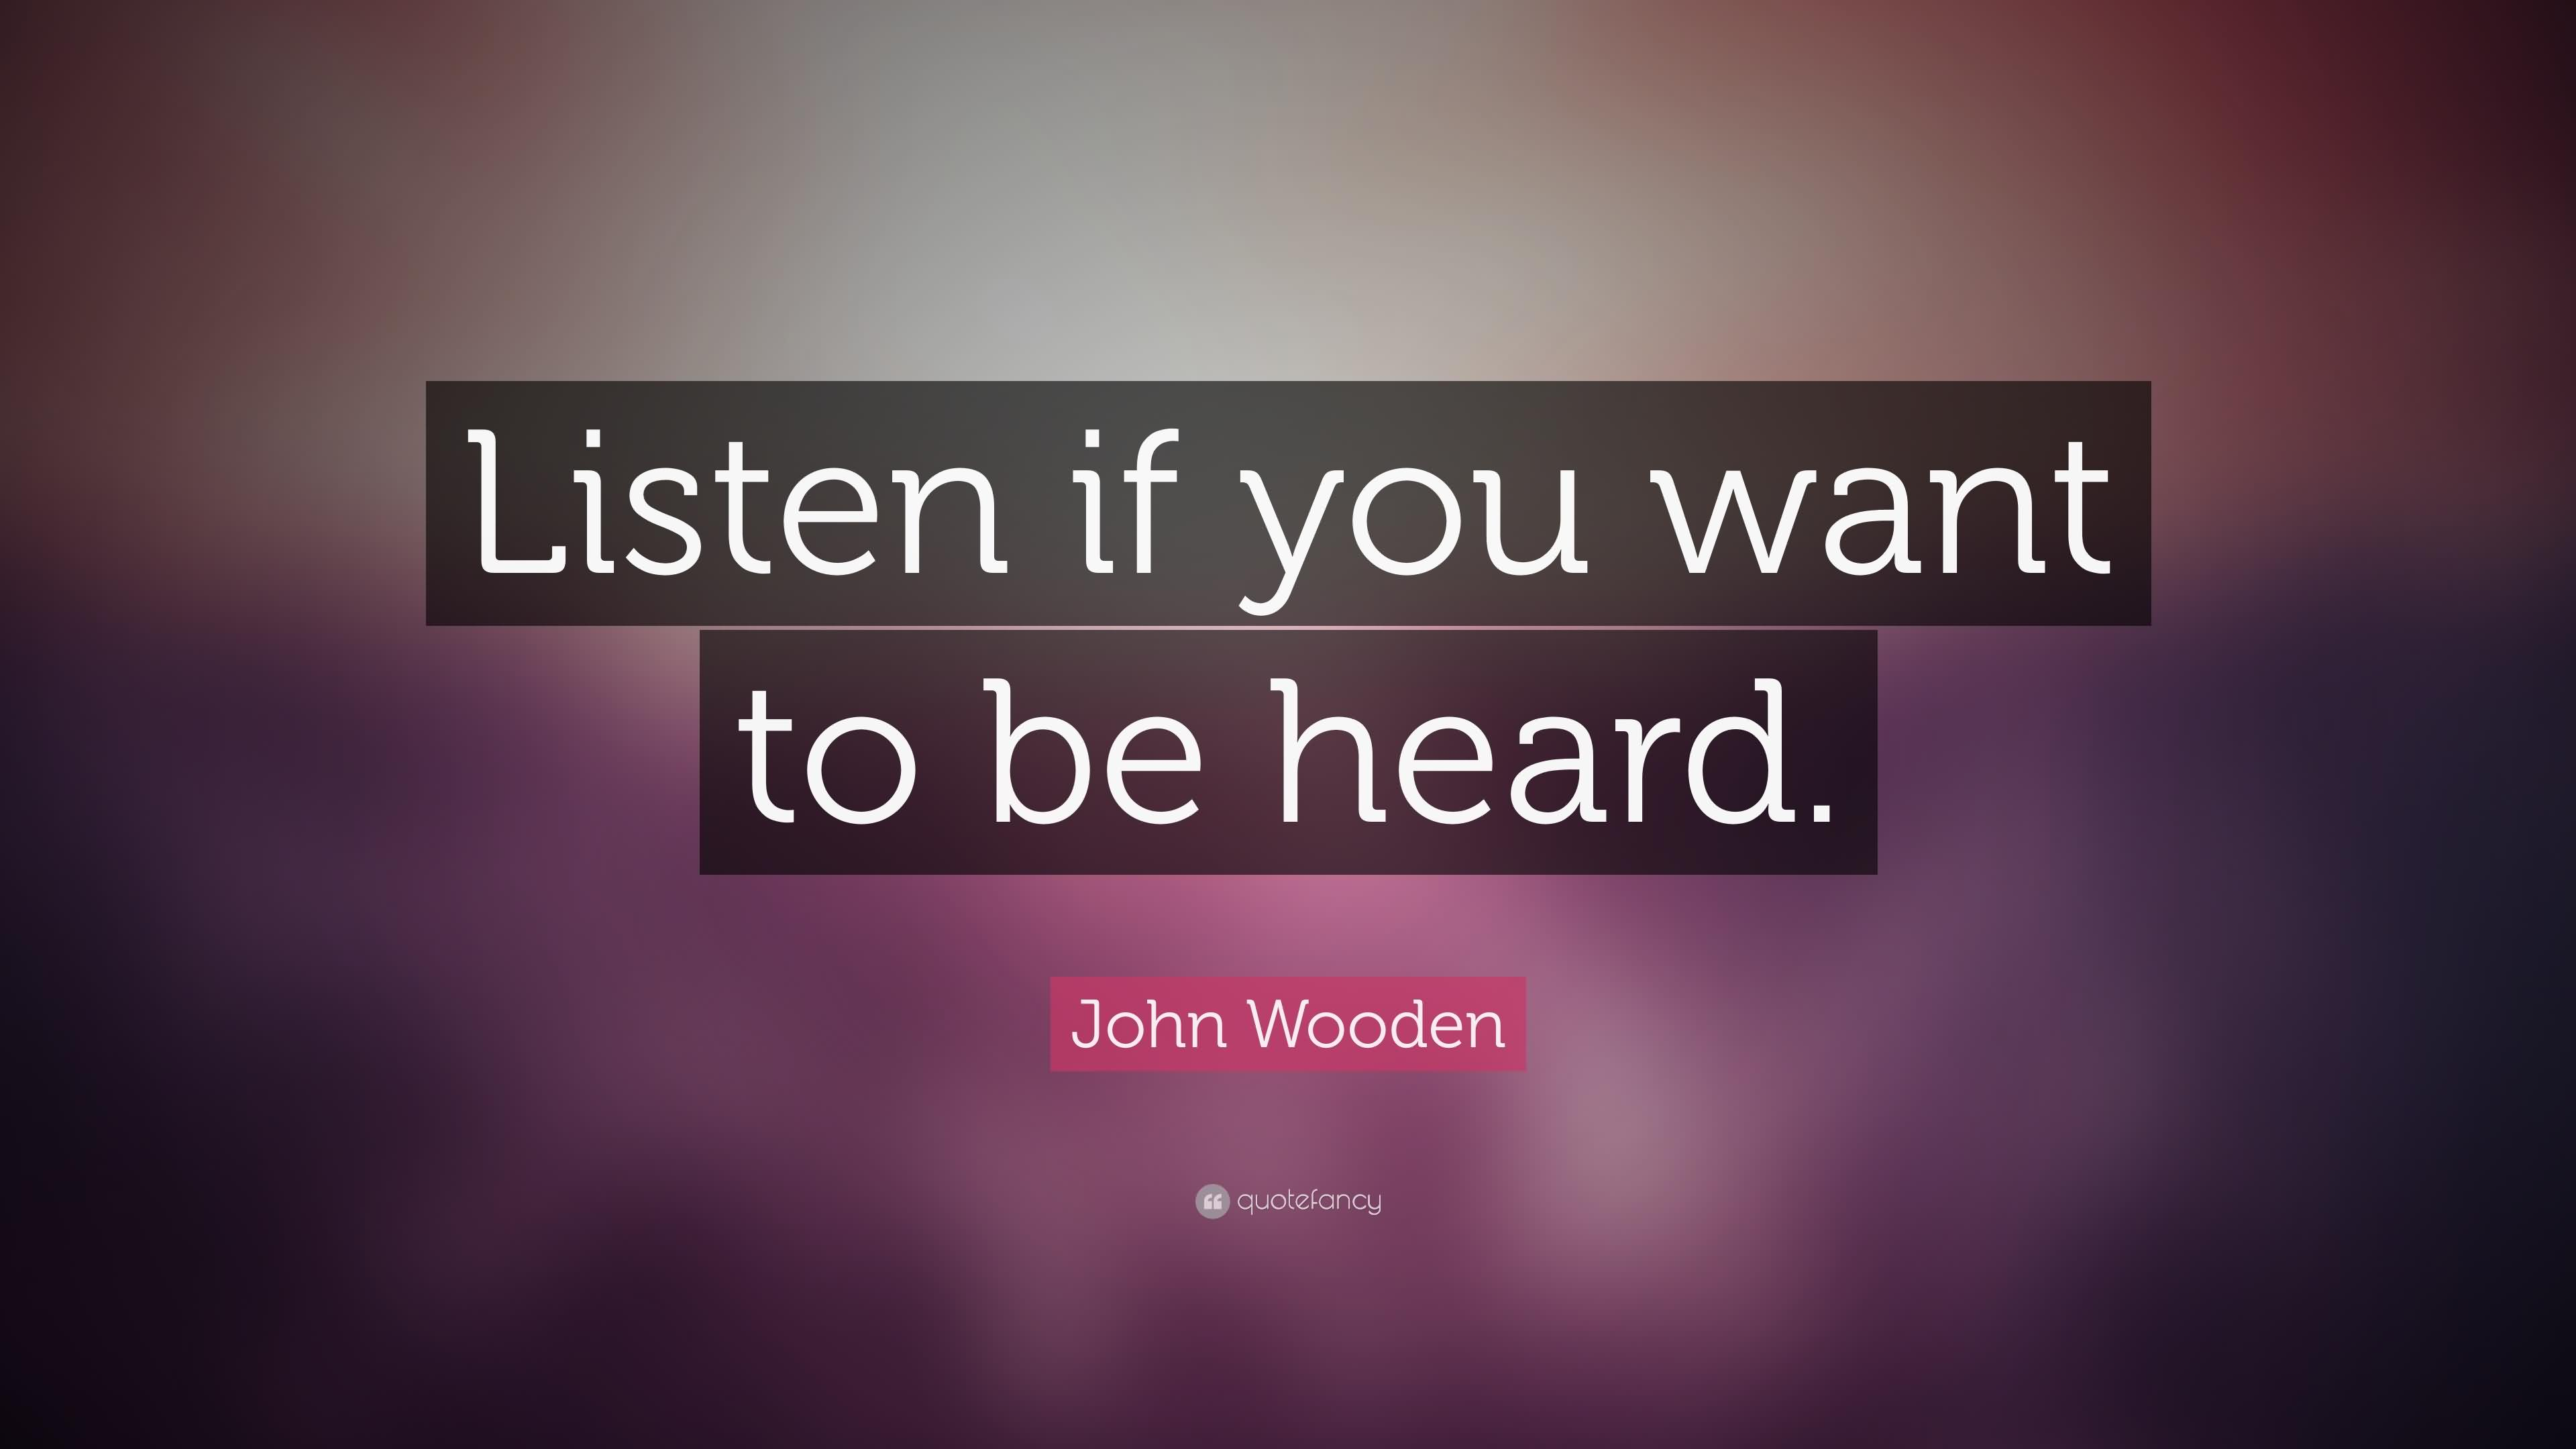 Awesome John Wooden Quotes